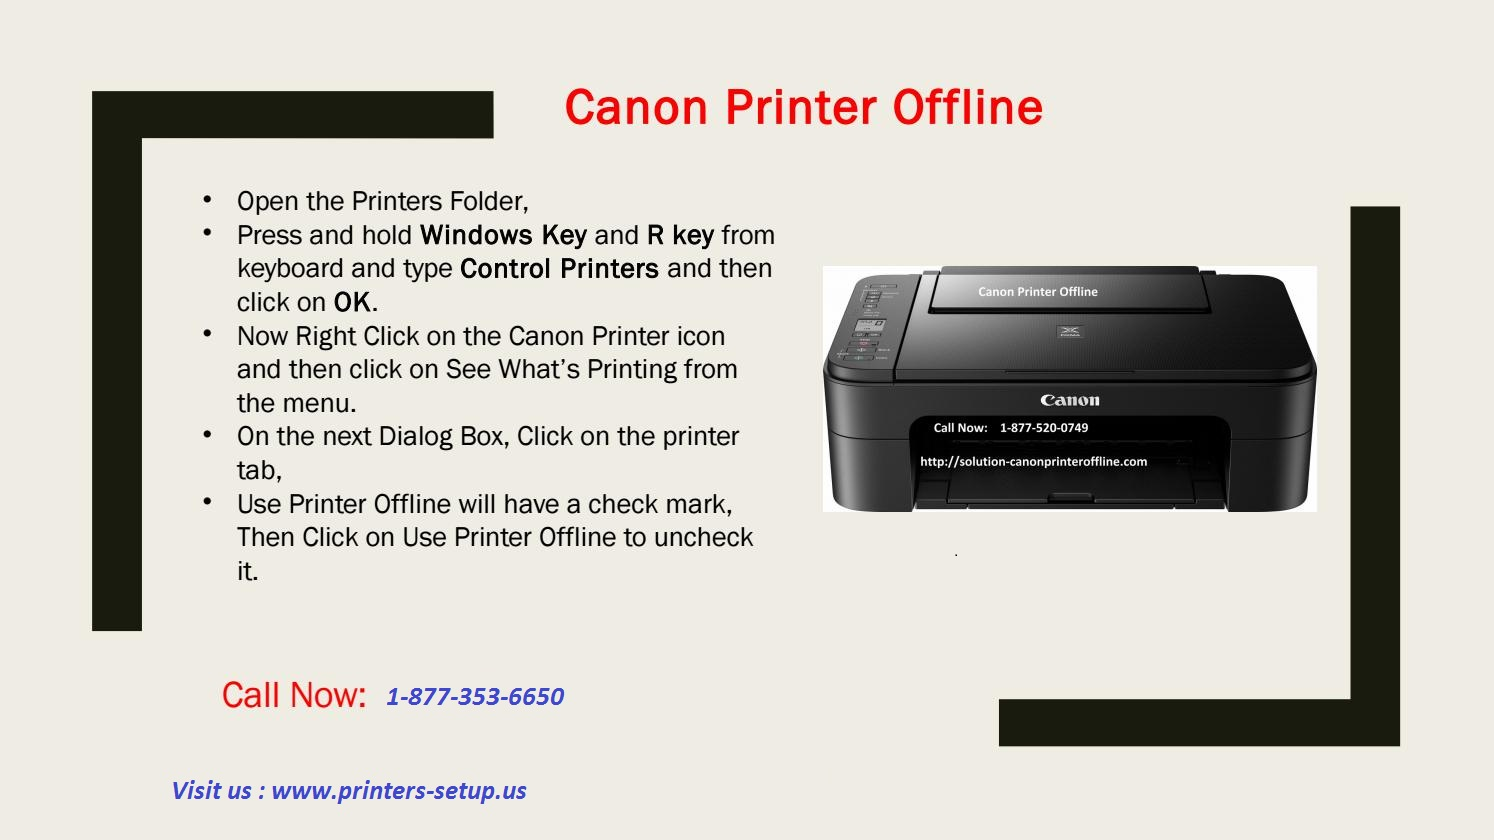 How to fix Canon Printer Offline Issue? Call 1-877-353-6650